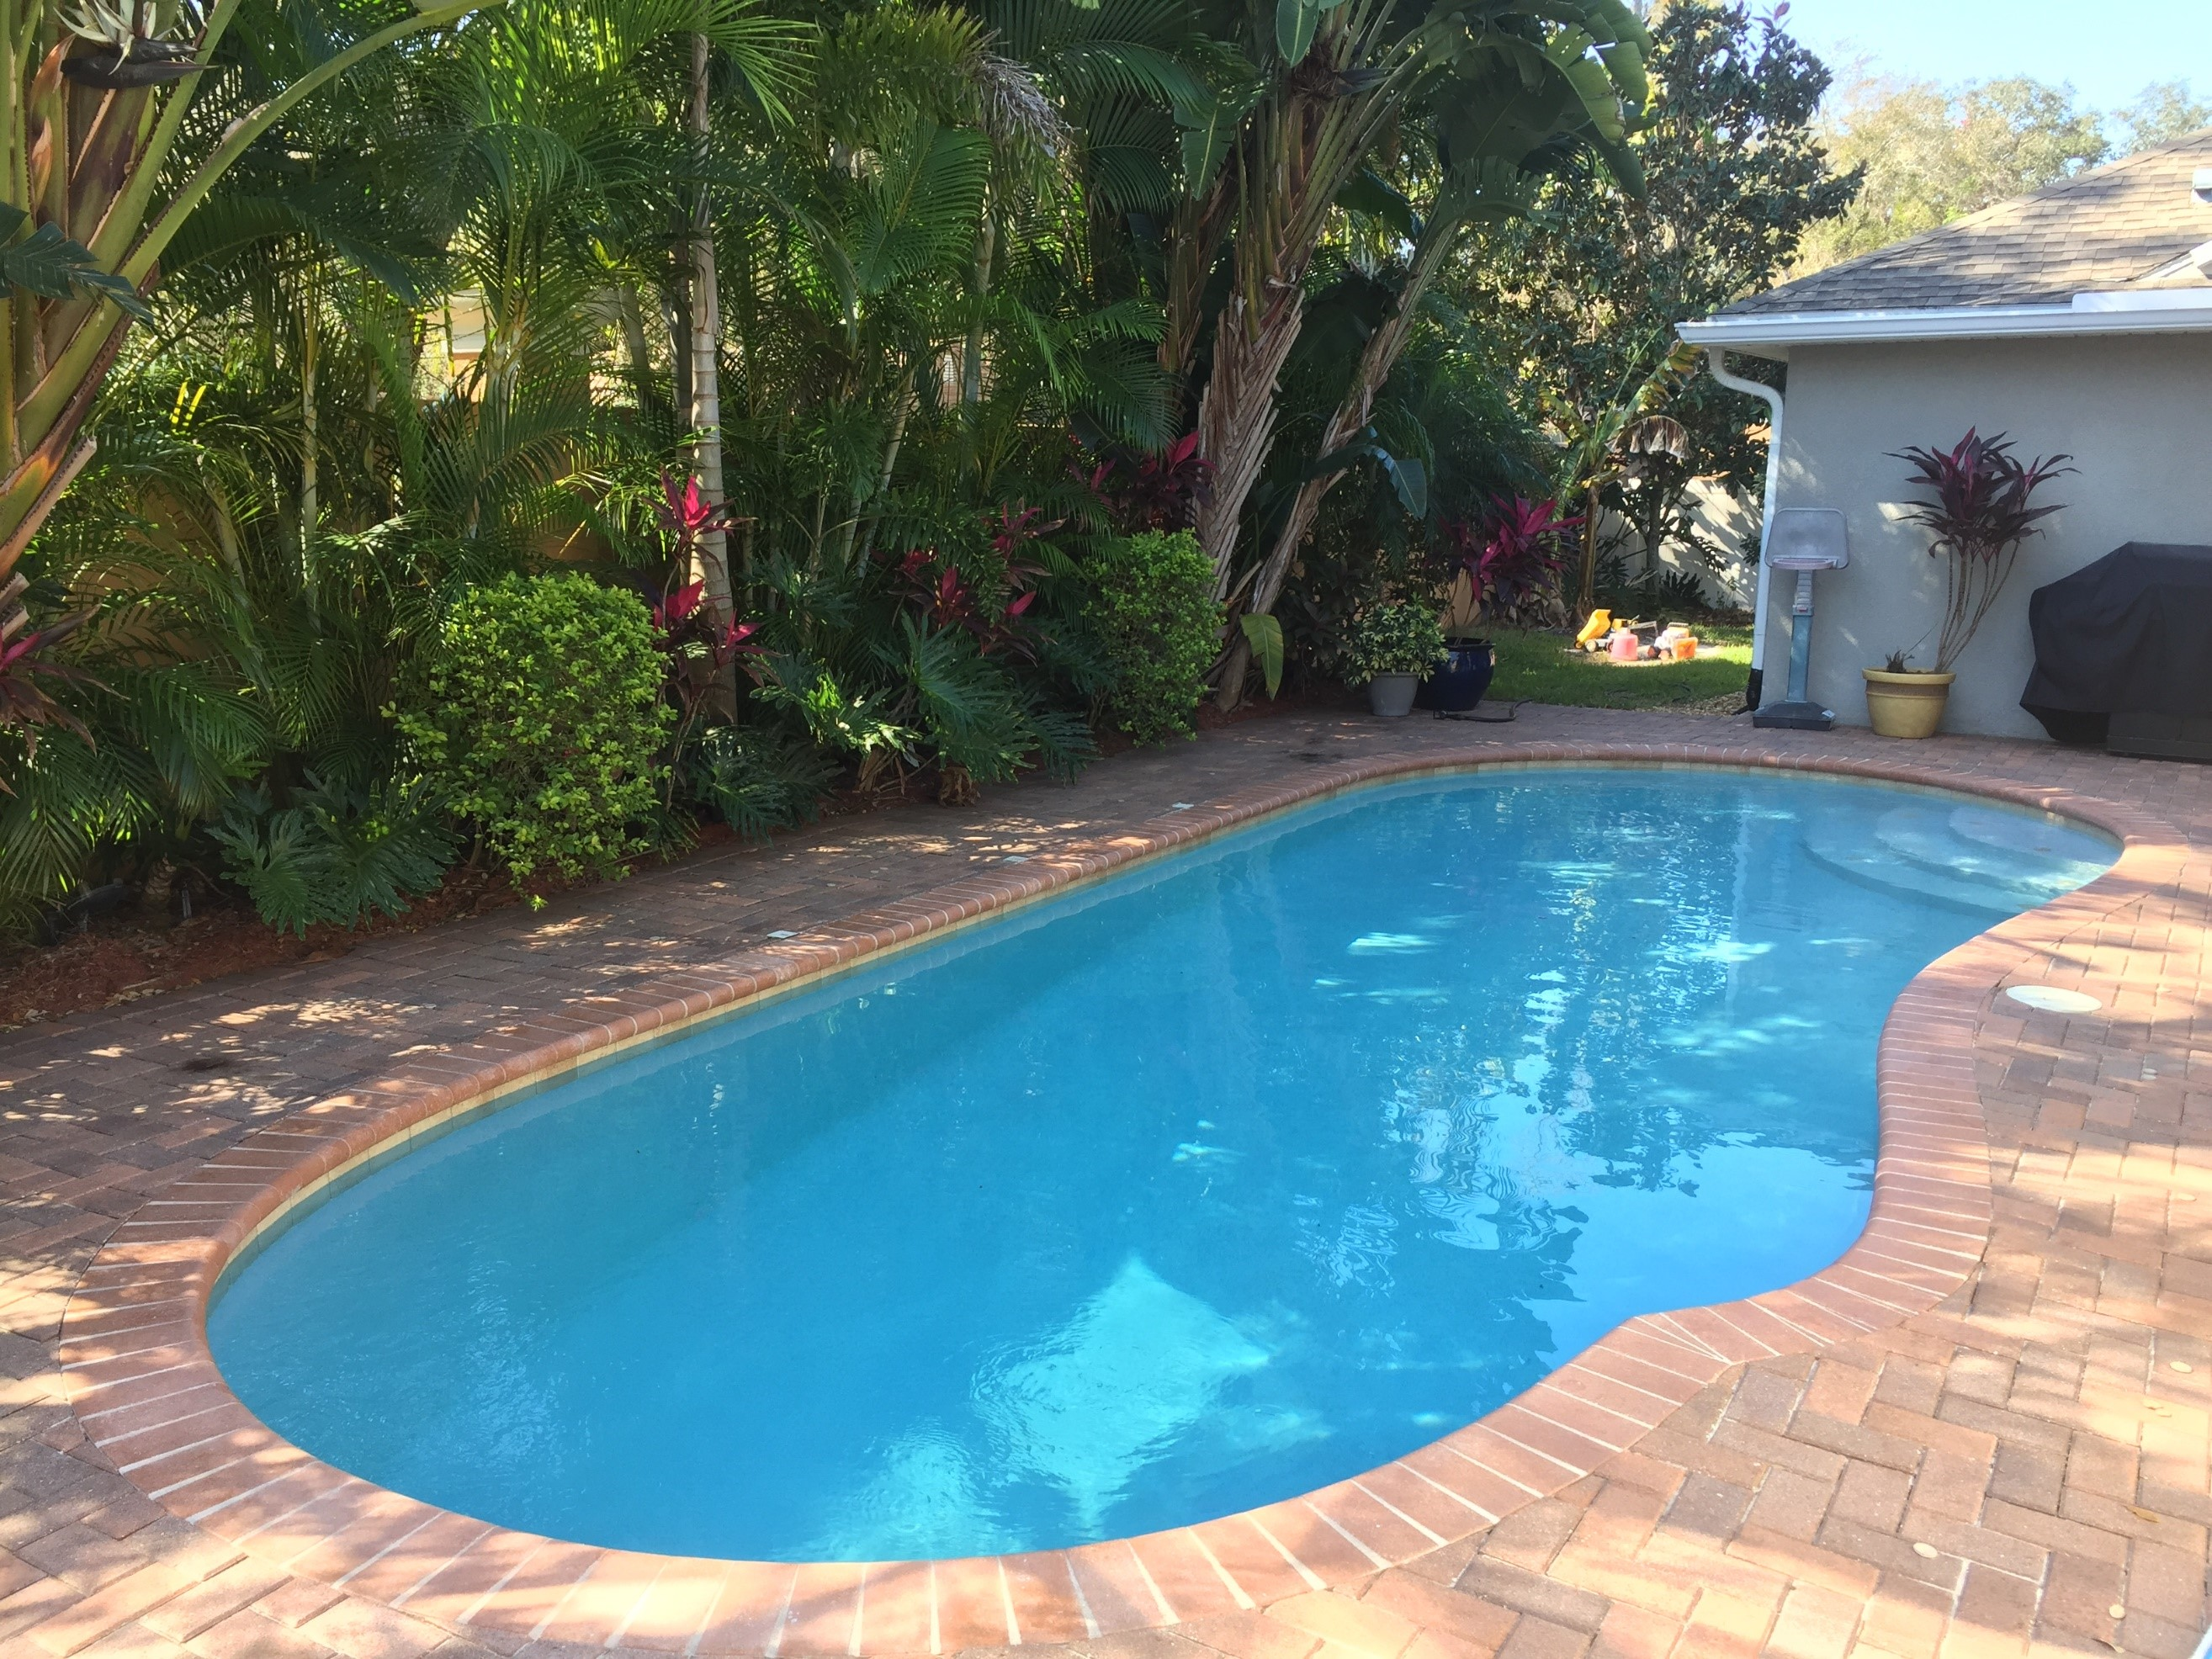 Bricks And Fertilizer From Plants Around Swimming Pool Add Stain-Causing Metals To Pool Water